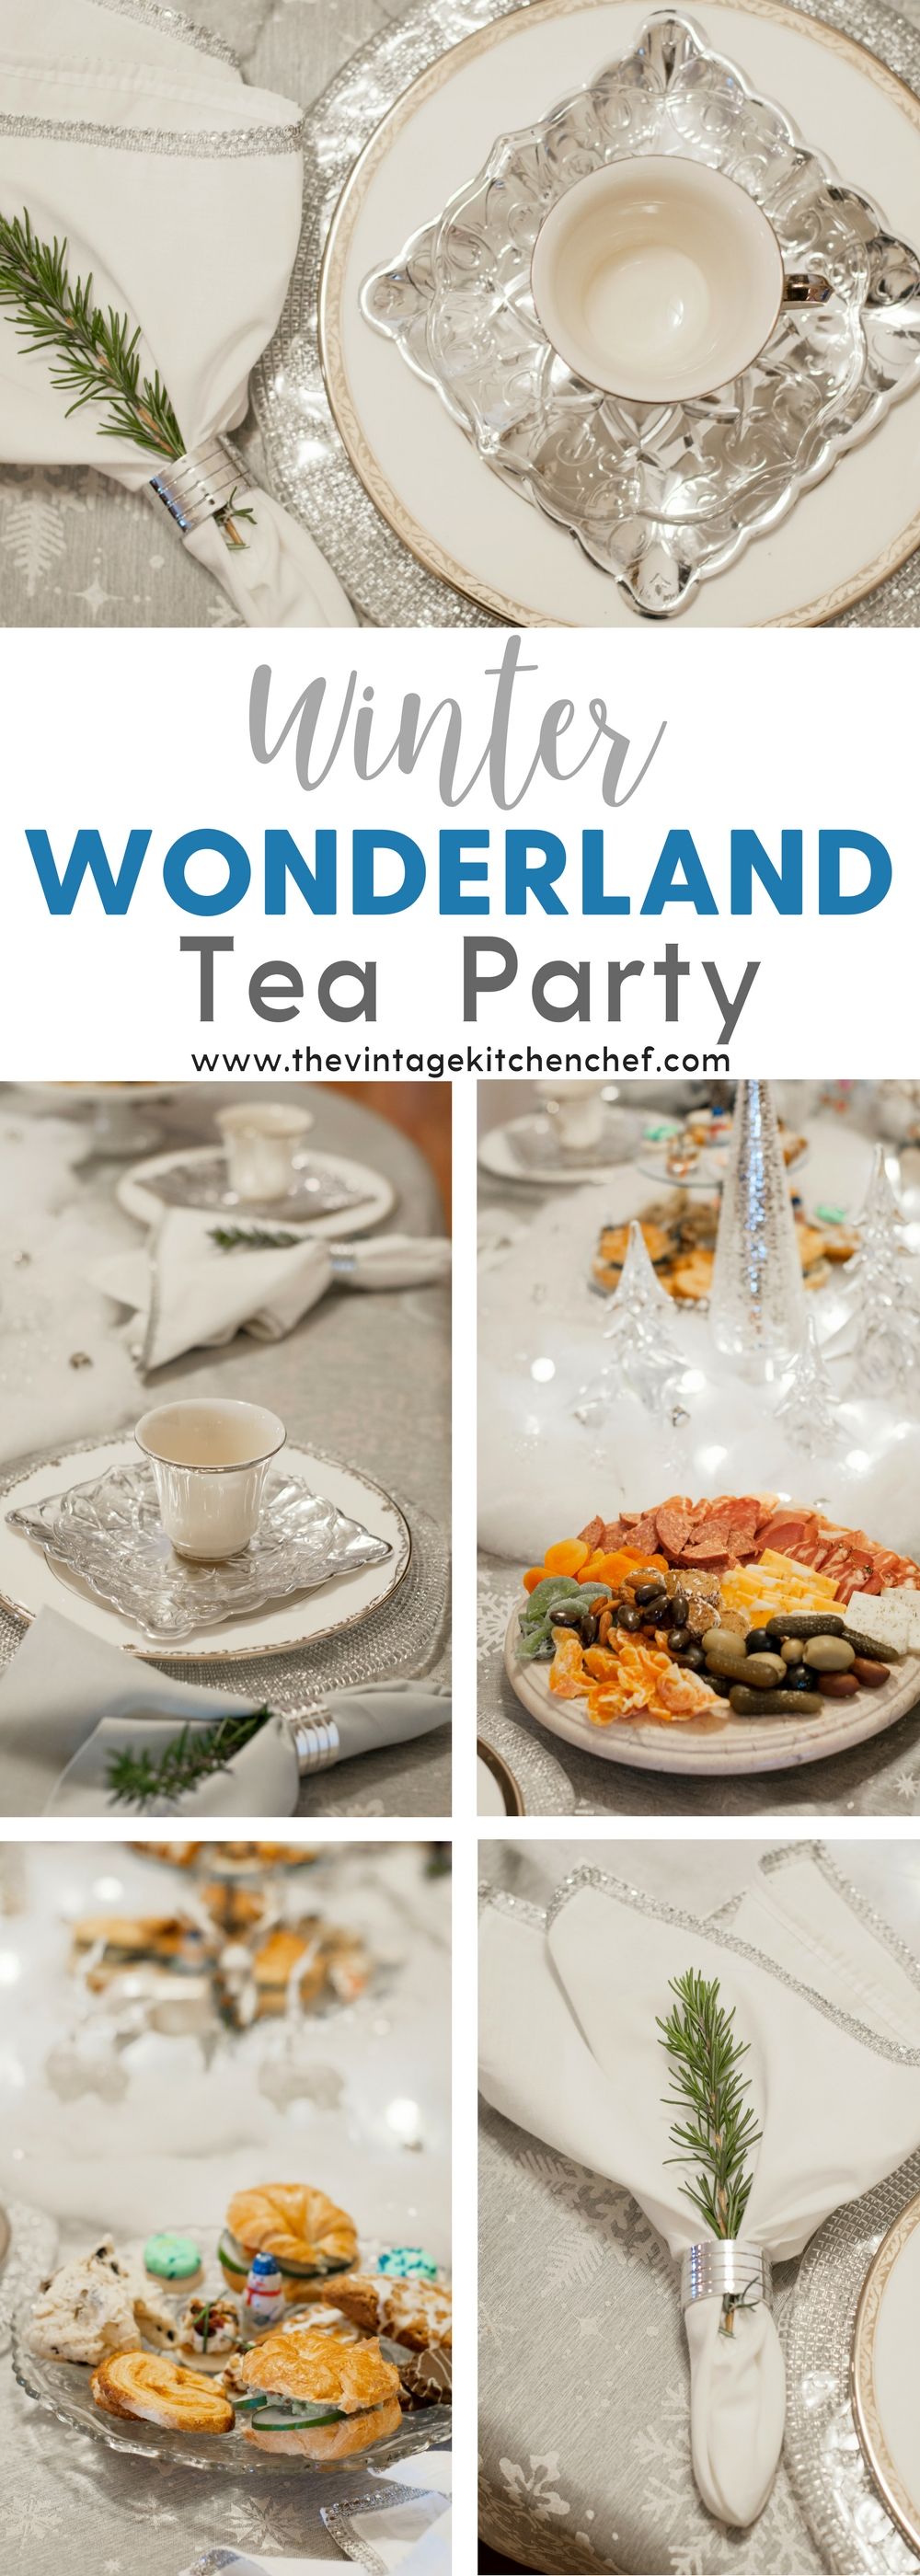 A magical Winter Wonderland tea party complete with sparkle, soft lights, delightful treats and a touch of whimsy! Time to relax and enjoy!